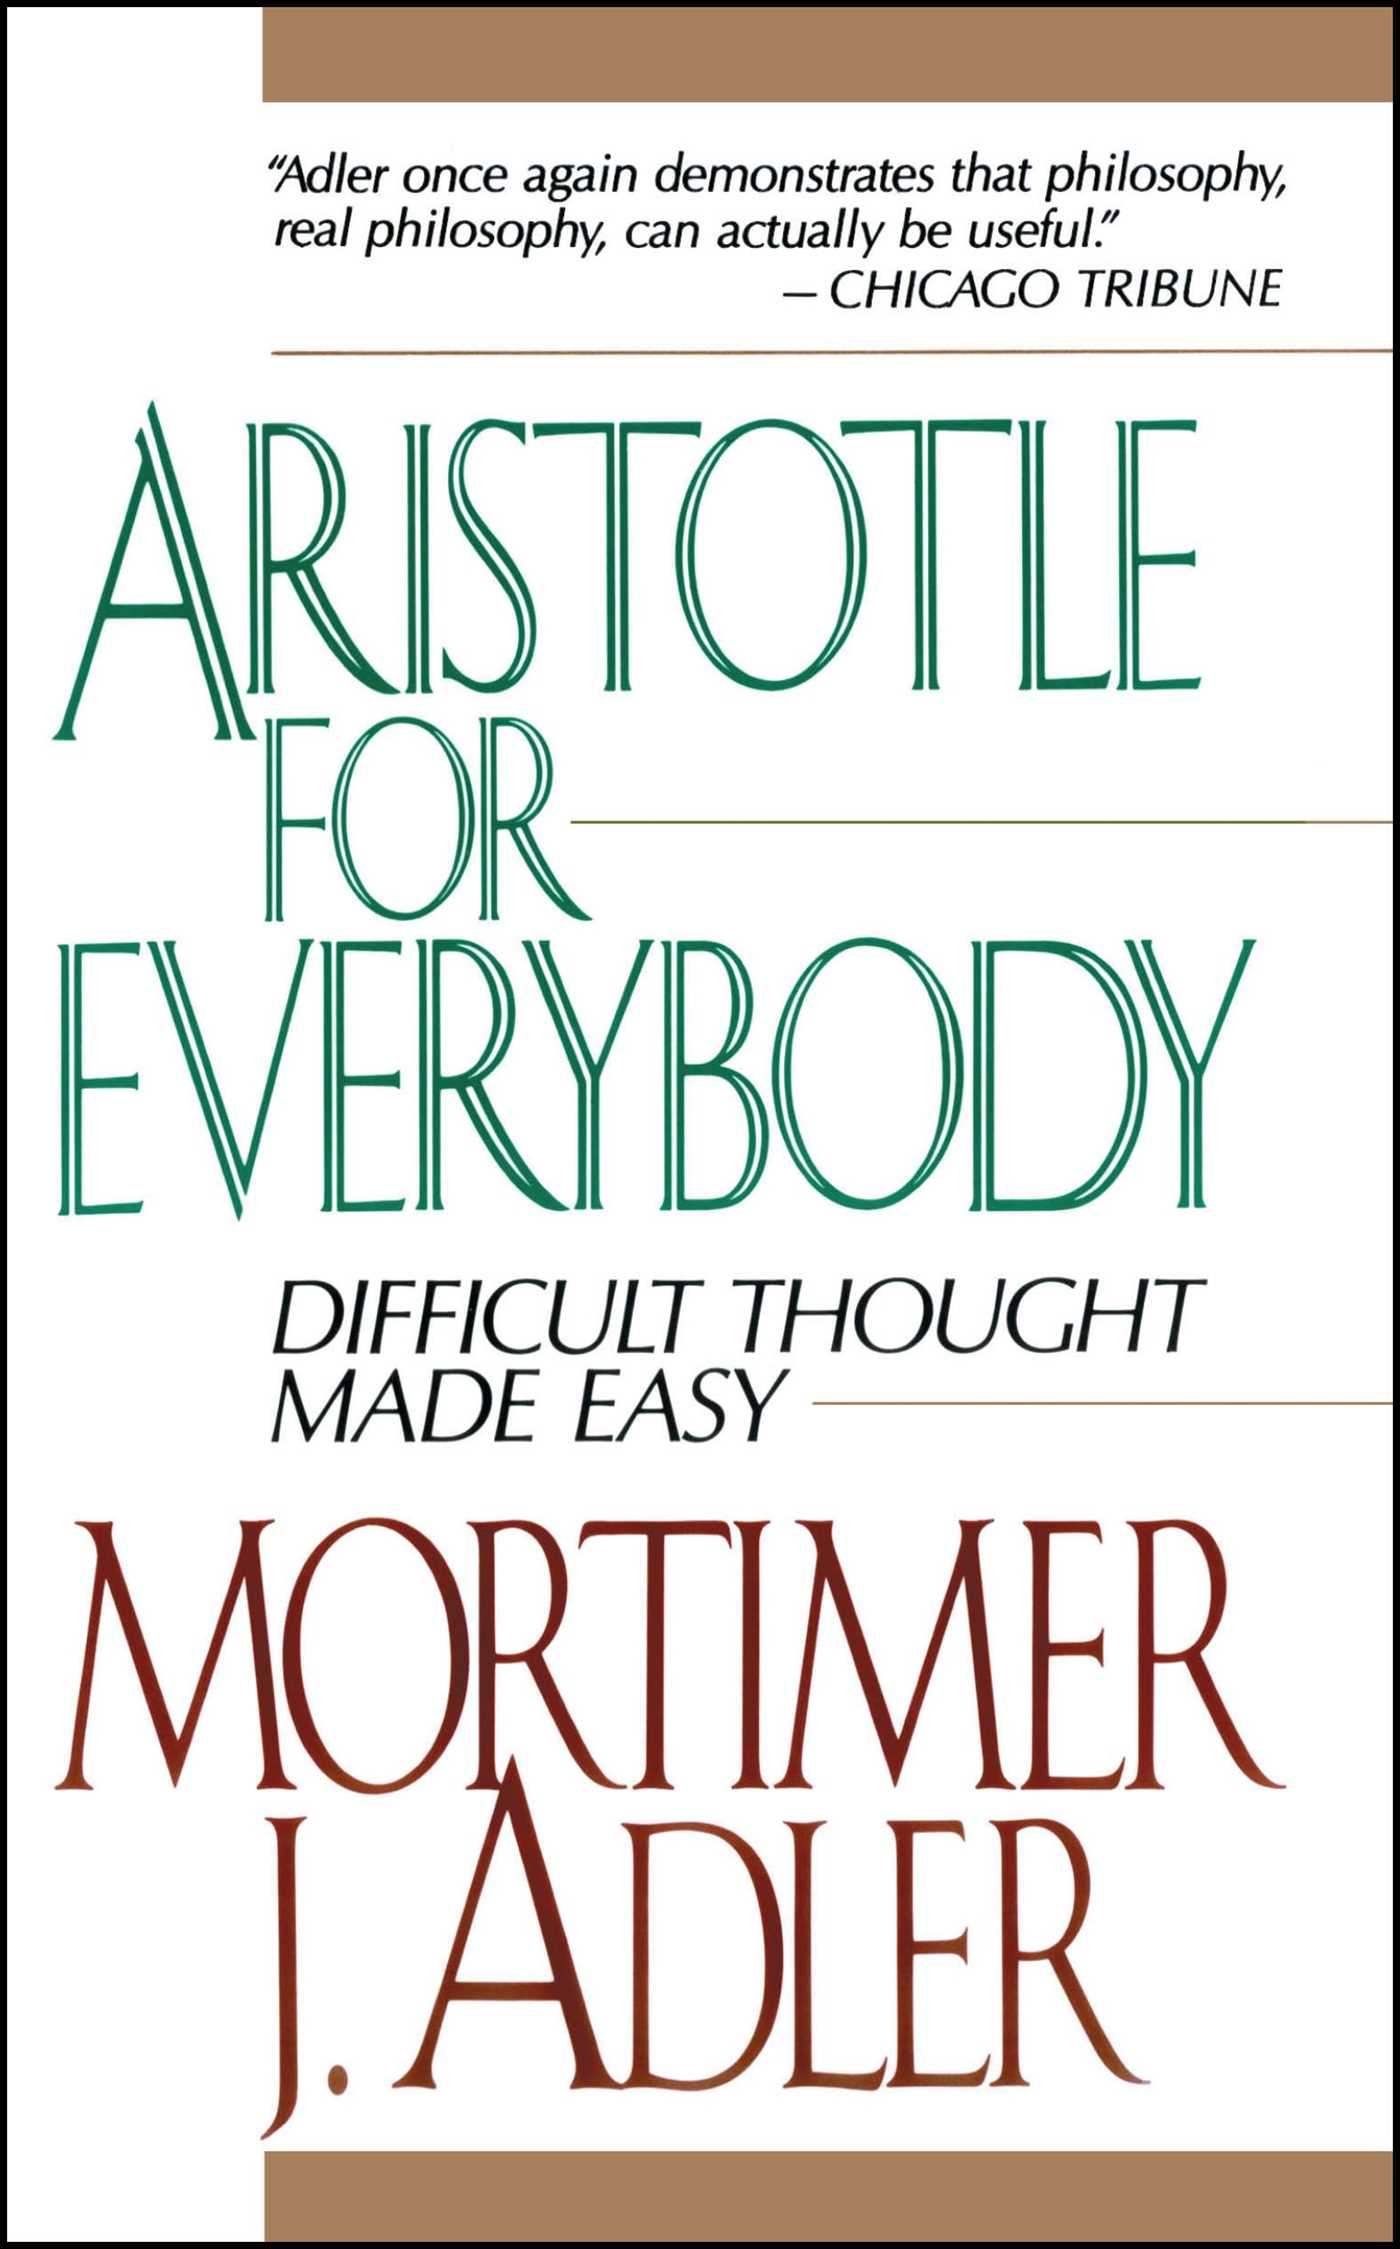 Aristotle-for-everybody-9781439104910_hr